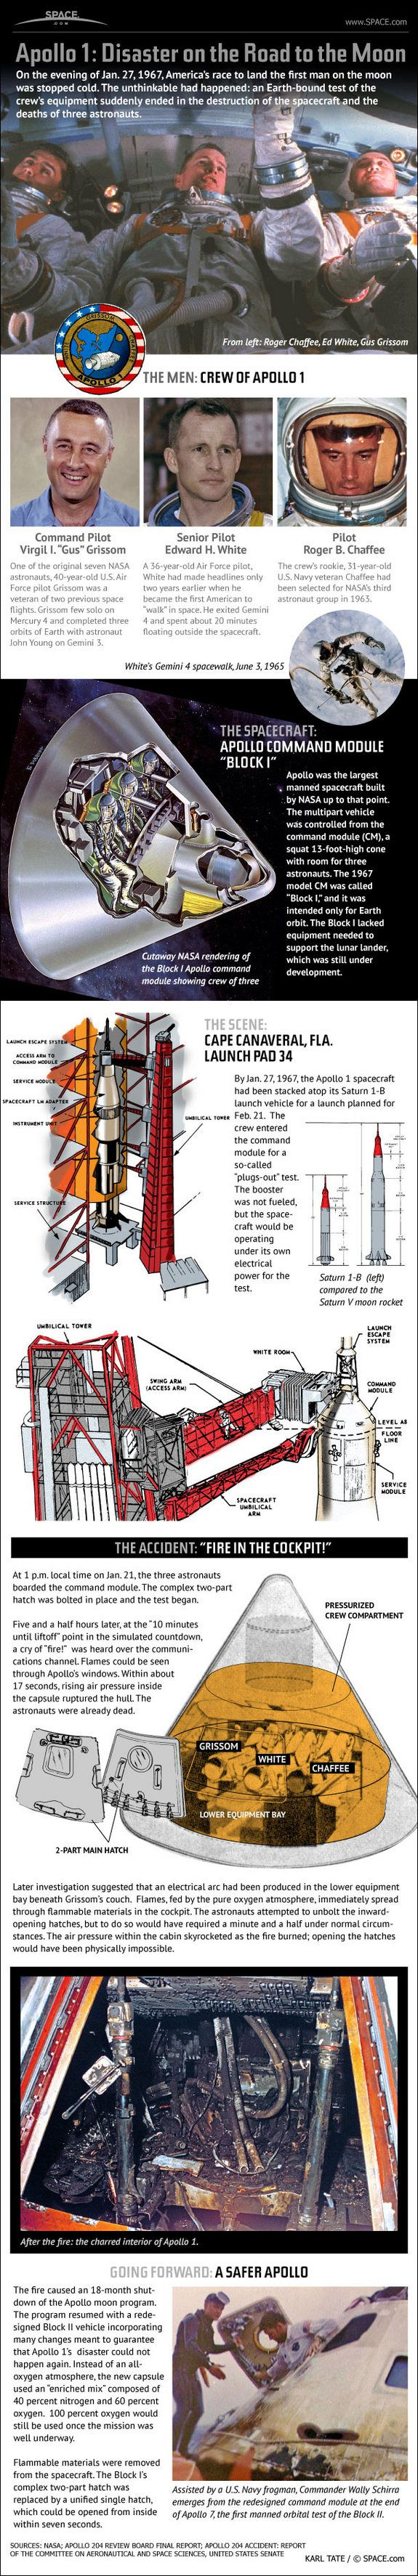 Apollo 1: disaster on the road to the Moon #infographic